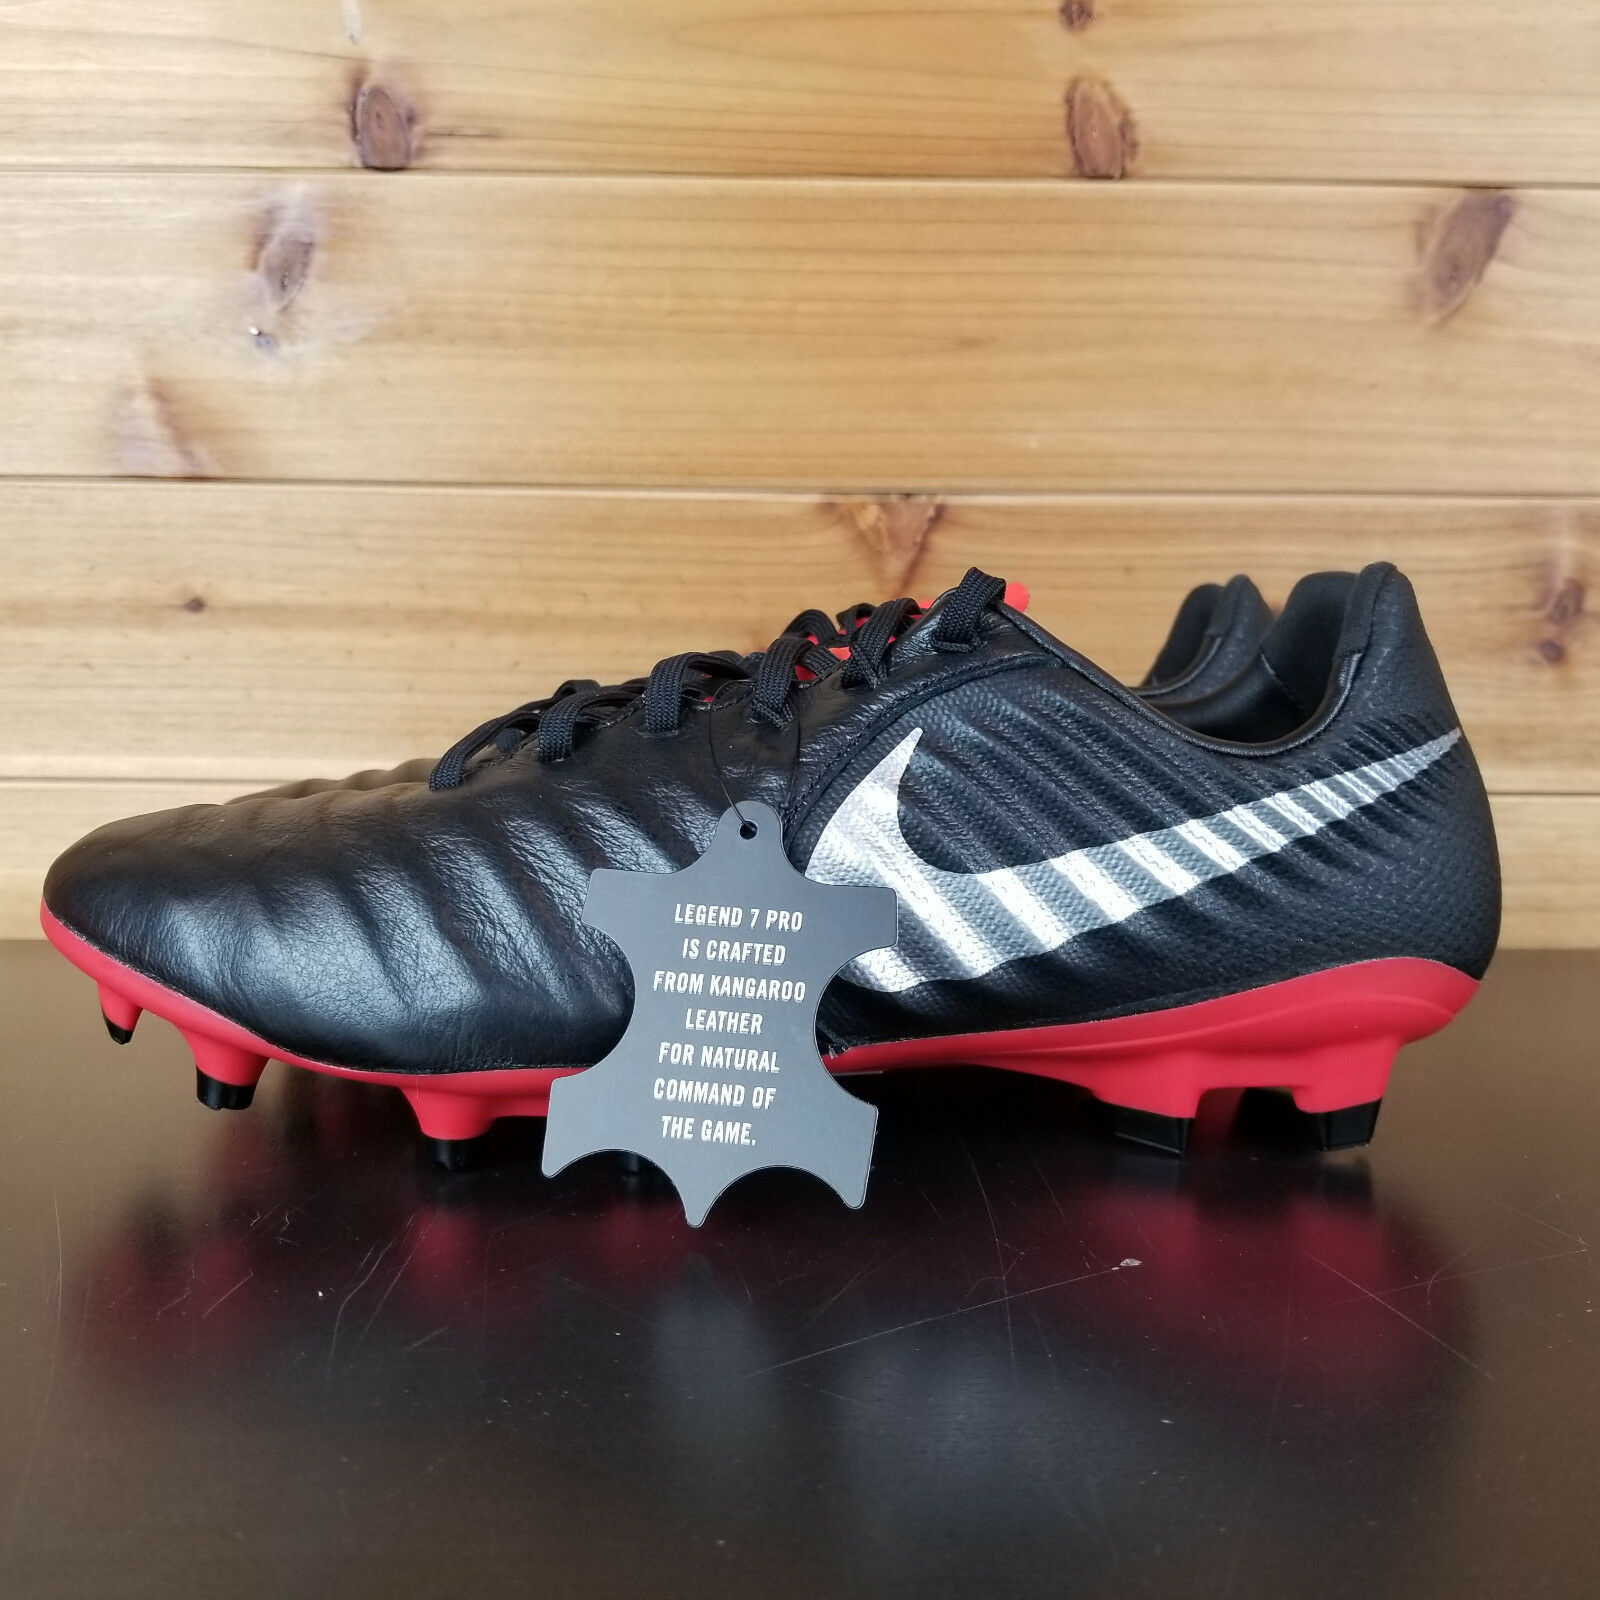 NIKE NIKE NIKE TIEMPO LEGEND 7 PRO FG SOCCER CLEATS MEN'S SHOES  BLACK RED AH7241-006 4f9625